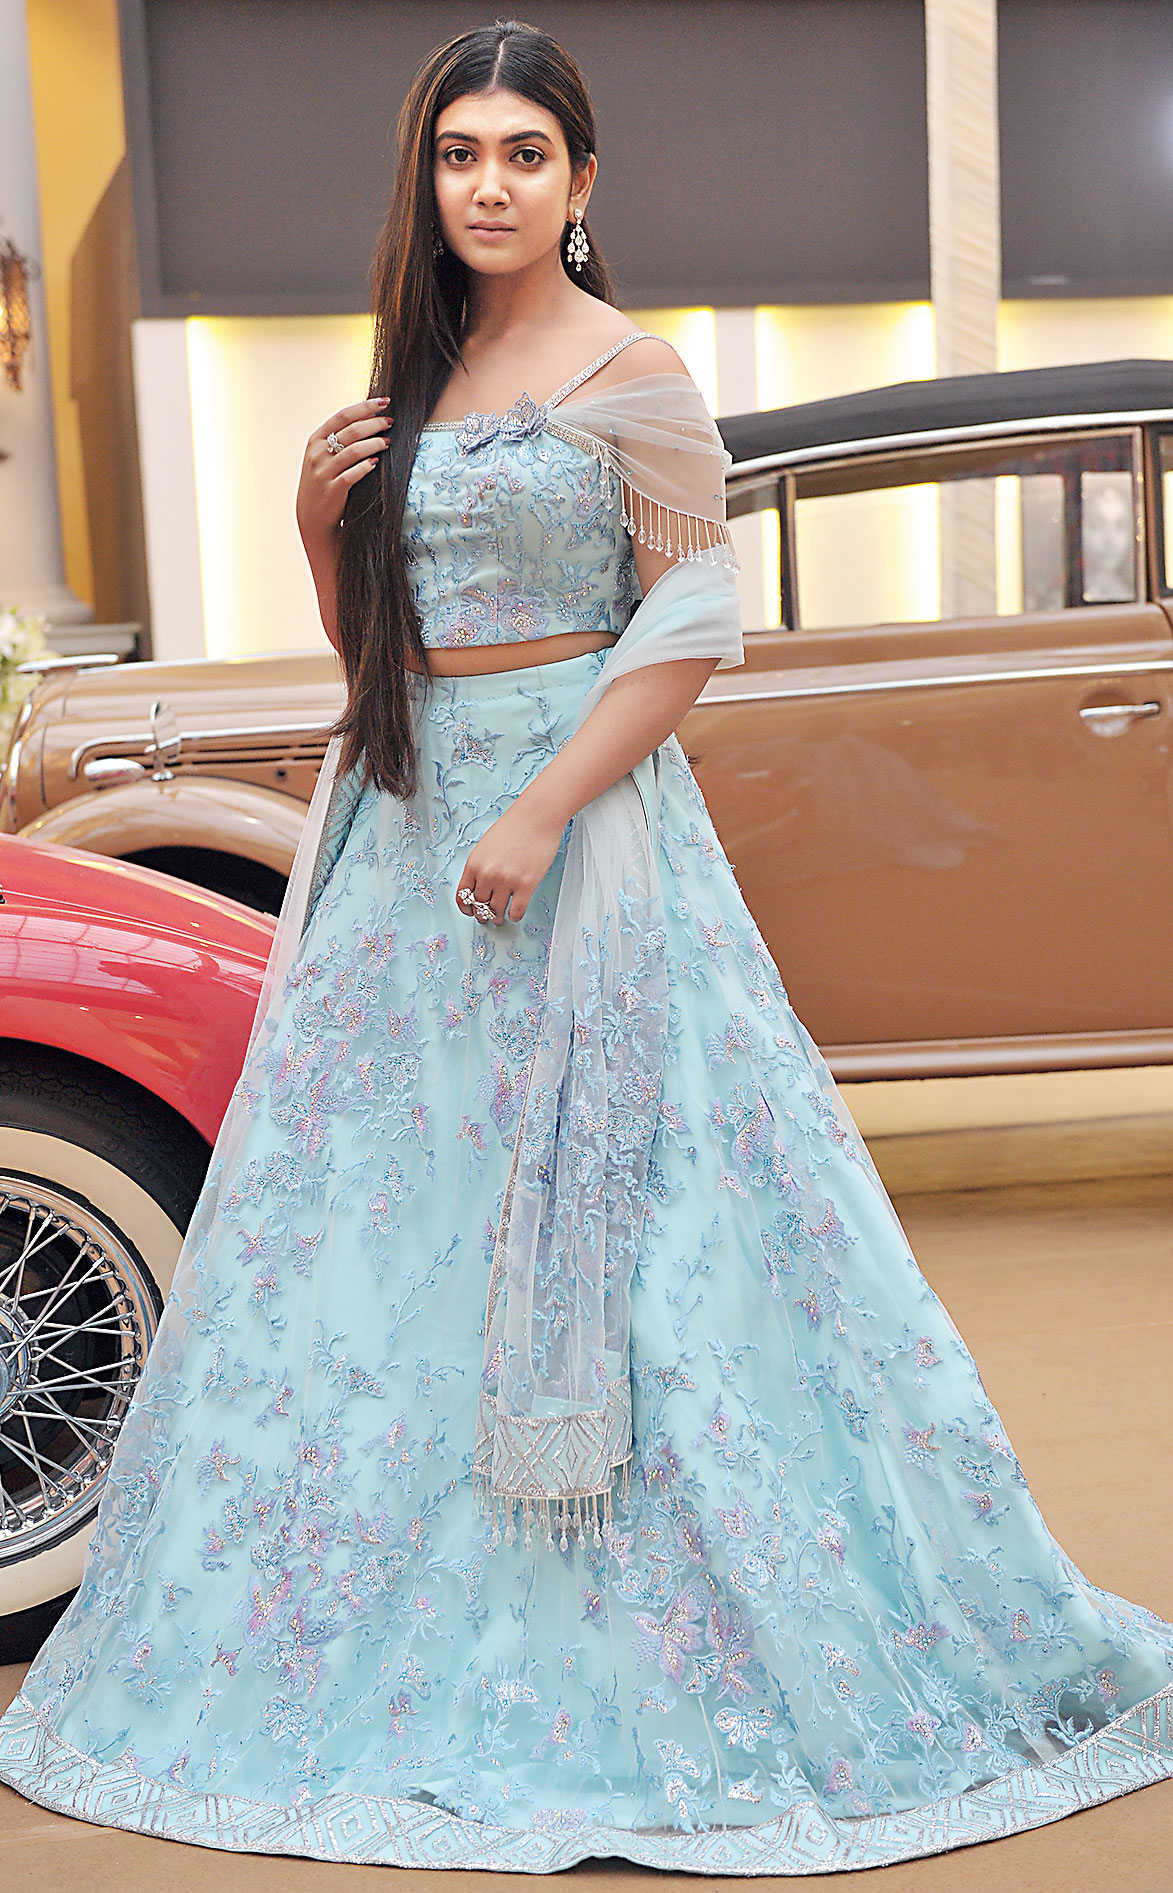 """An aqua net lehnga with silver sequins, crystals and thread embroidery. """"A little sexy, with tassels on one side, with 3D flowers… the colour is fresh and pretty and the embroidery light and quite effective. It is a nice festive look,"""" said Suneet Varma"""